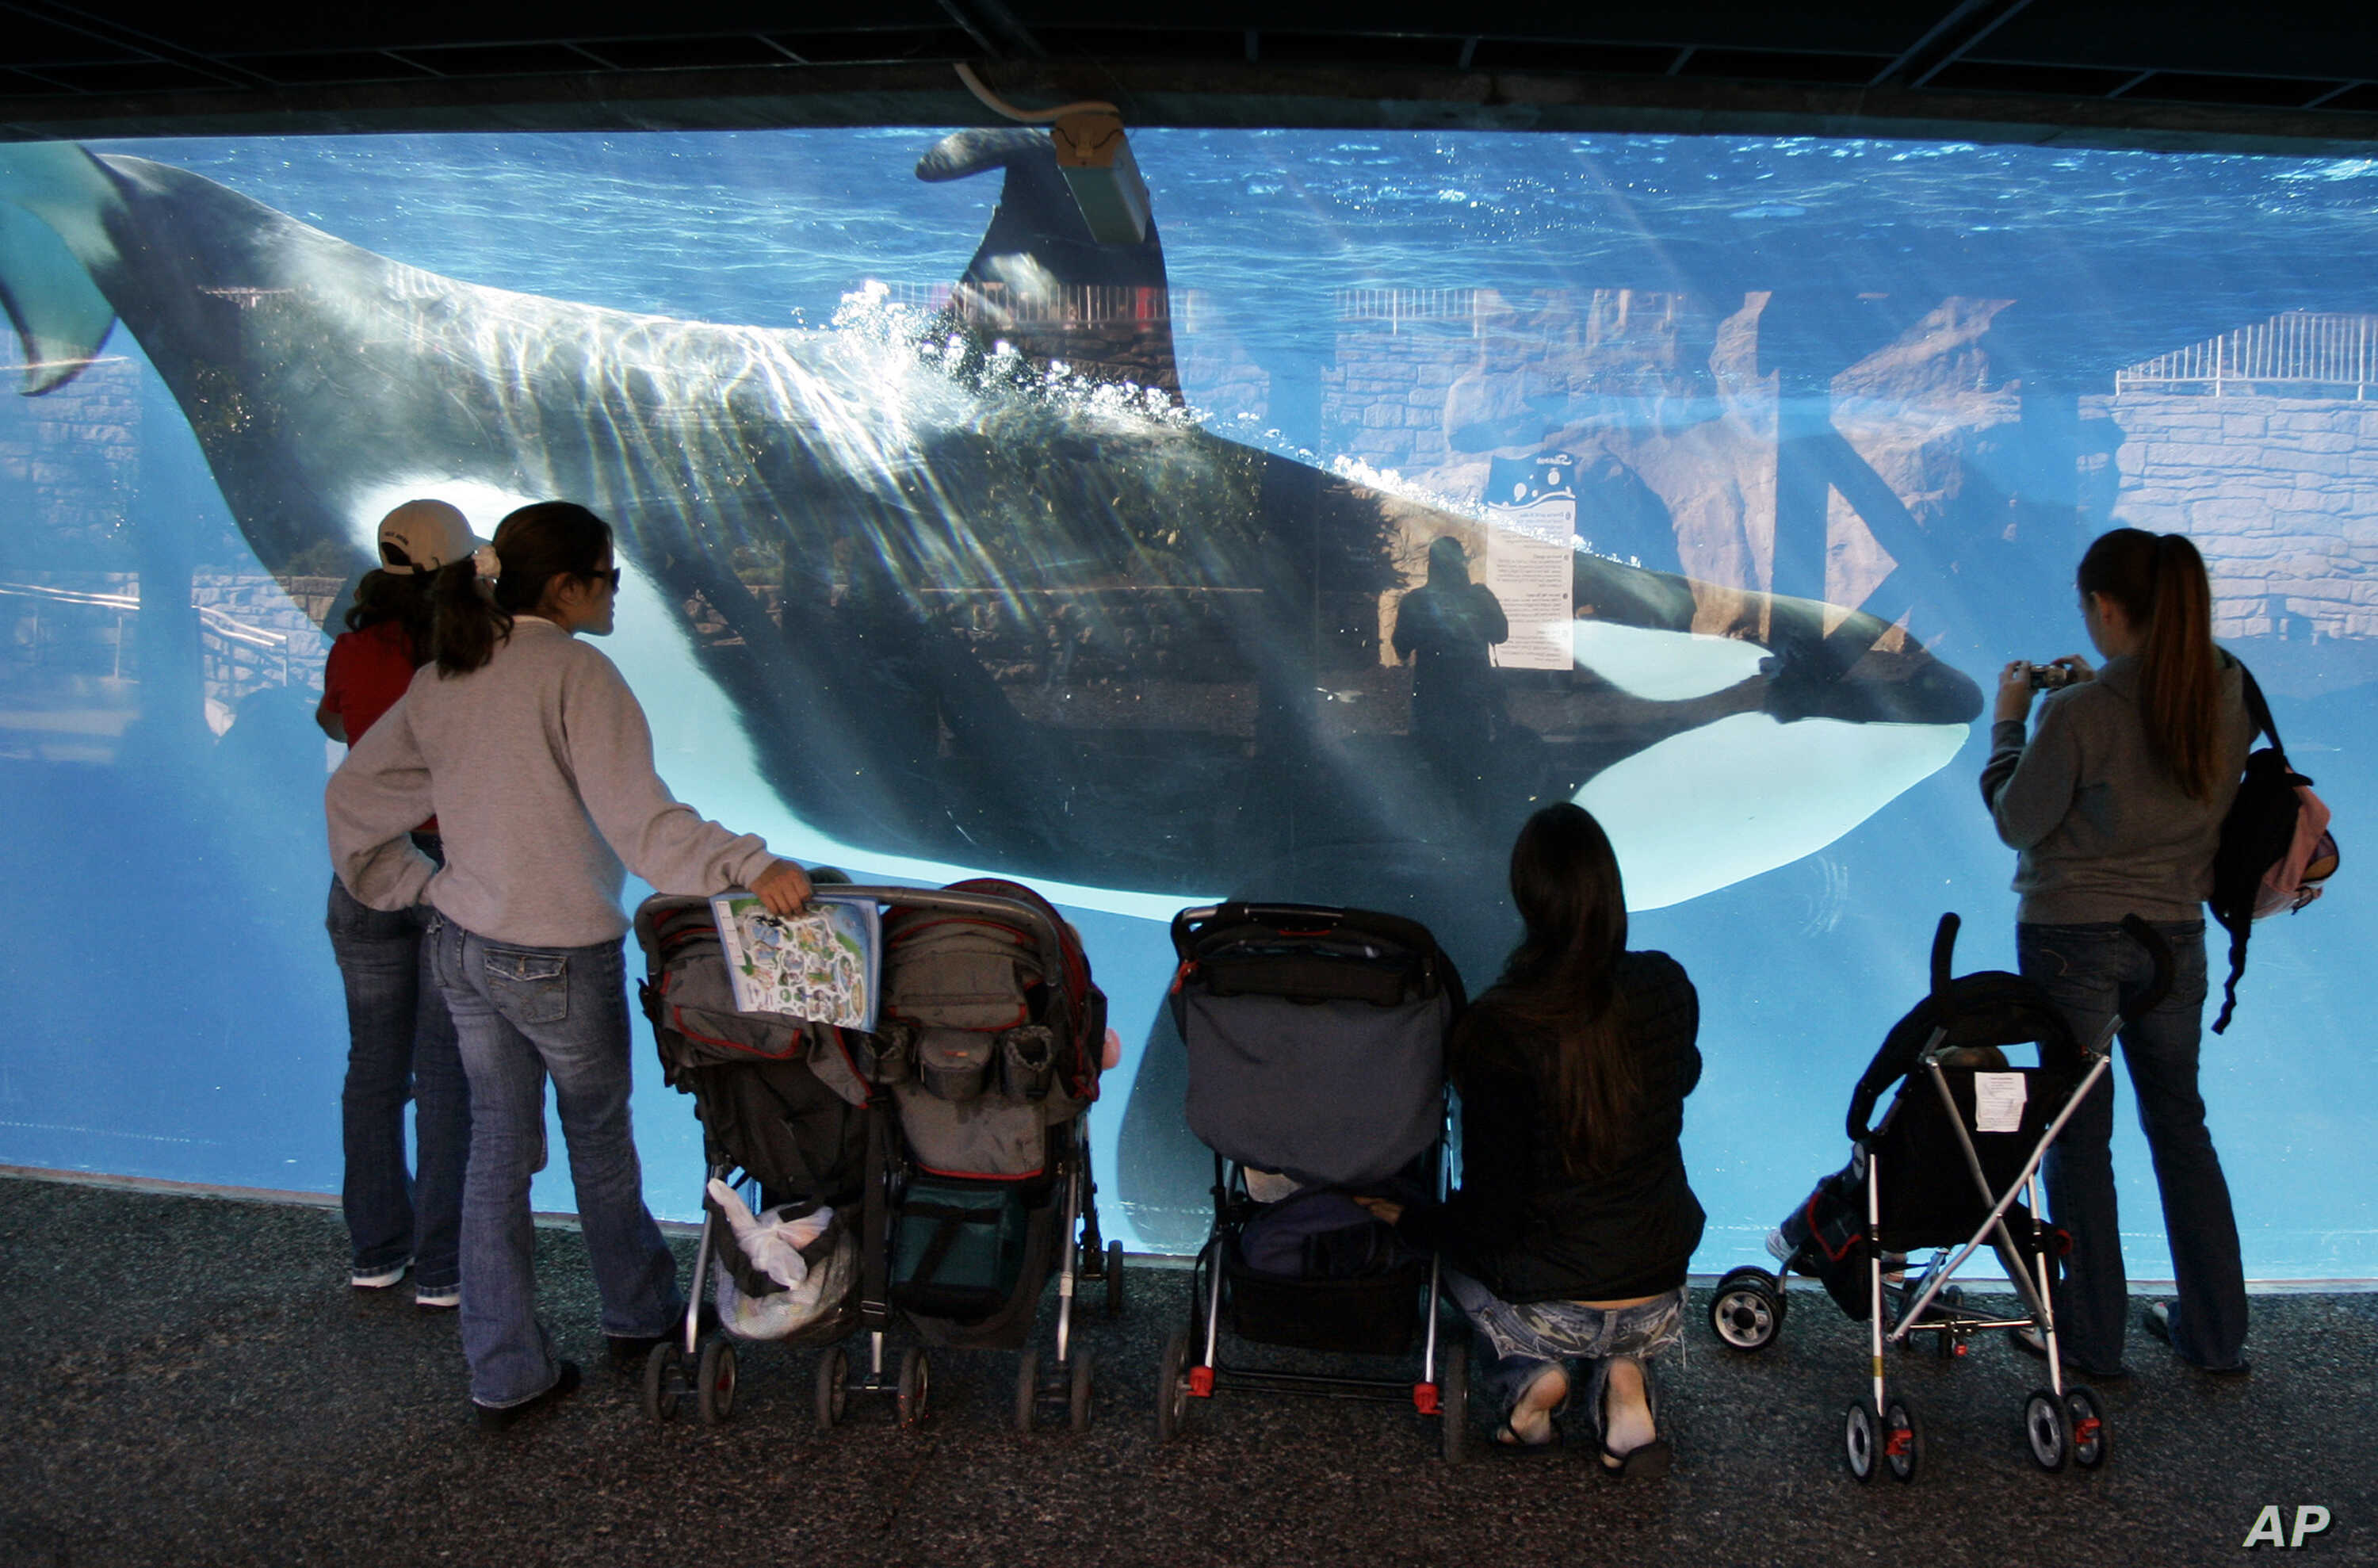 FILE -  In this Nov. 30, 2006, file photo, people watch through glass as a killer whale swims by in a display tank at SeaWorld in San Diego. A SeaWorld executive says orca shows at the company's San Diego park will end by 2017.